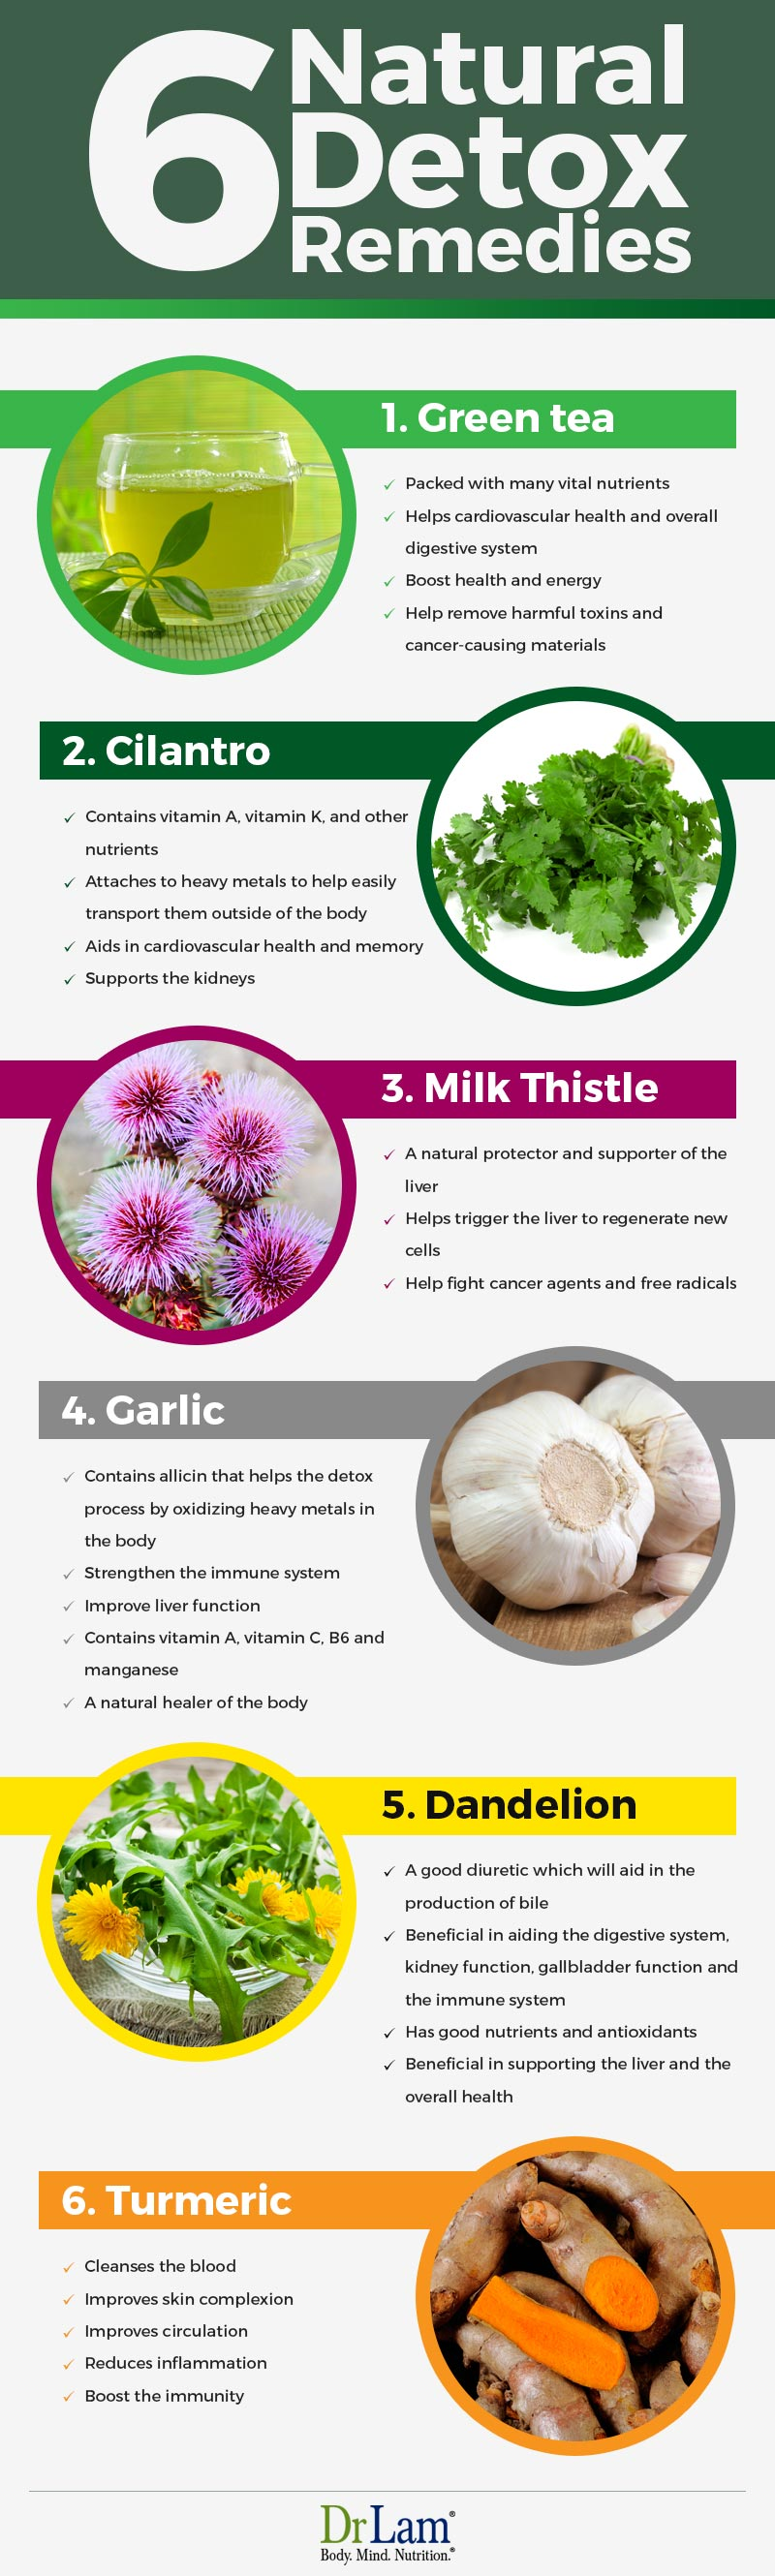 Check out this easy to understand infographic about 6 ingredients to detox your body naturally.